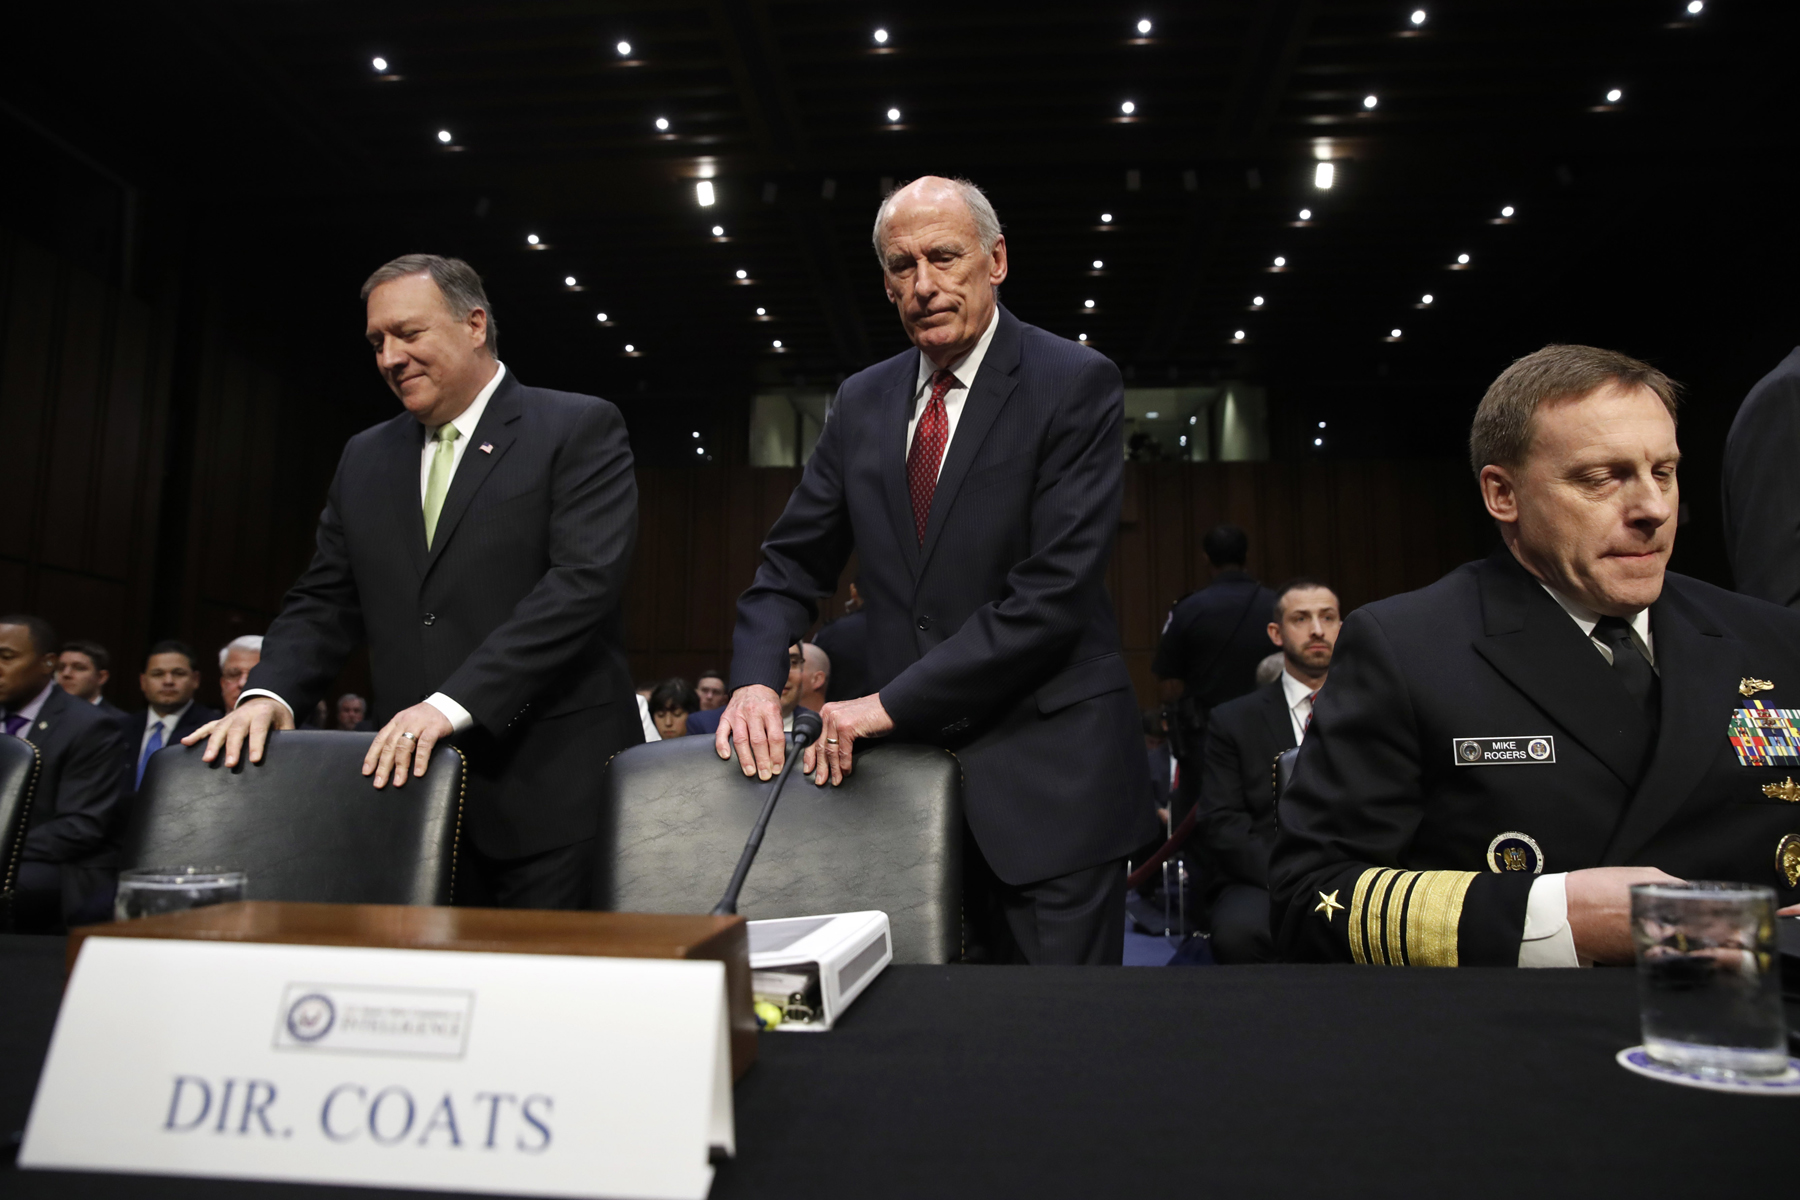 CIA Director Mike Pompeo (left), Director of National Intelligence Dan Coats, and National Security Agency Director Adm. Michael Rogers take their seats on Capitol Hill in Washington, May 11, 2017, prior to testifying before the Senate Intelligence Committee hearing on major threats facing the U.S. (Photo: Jacquelyn Martin/AP)